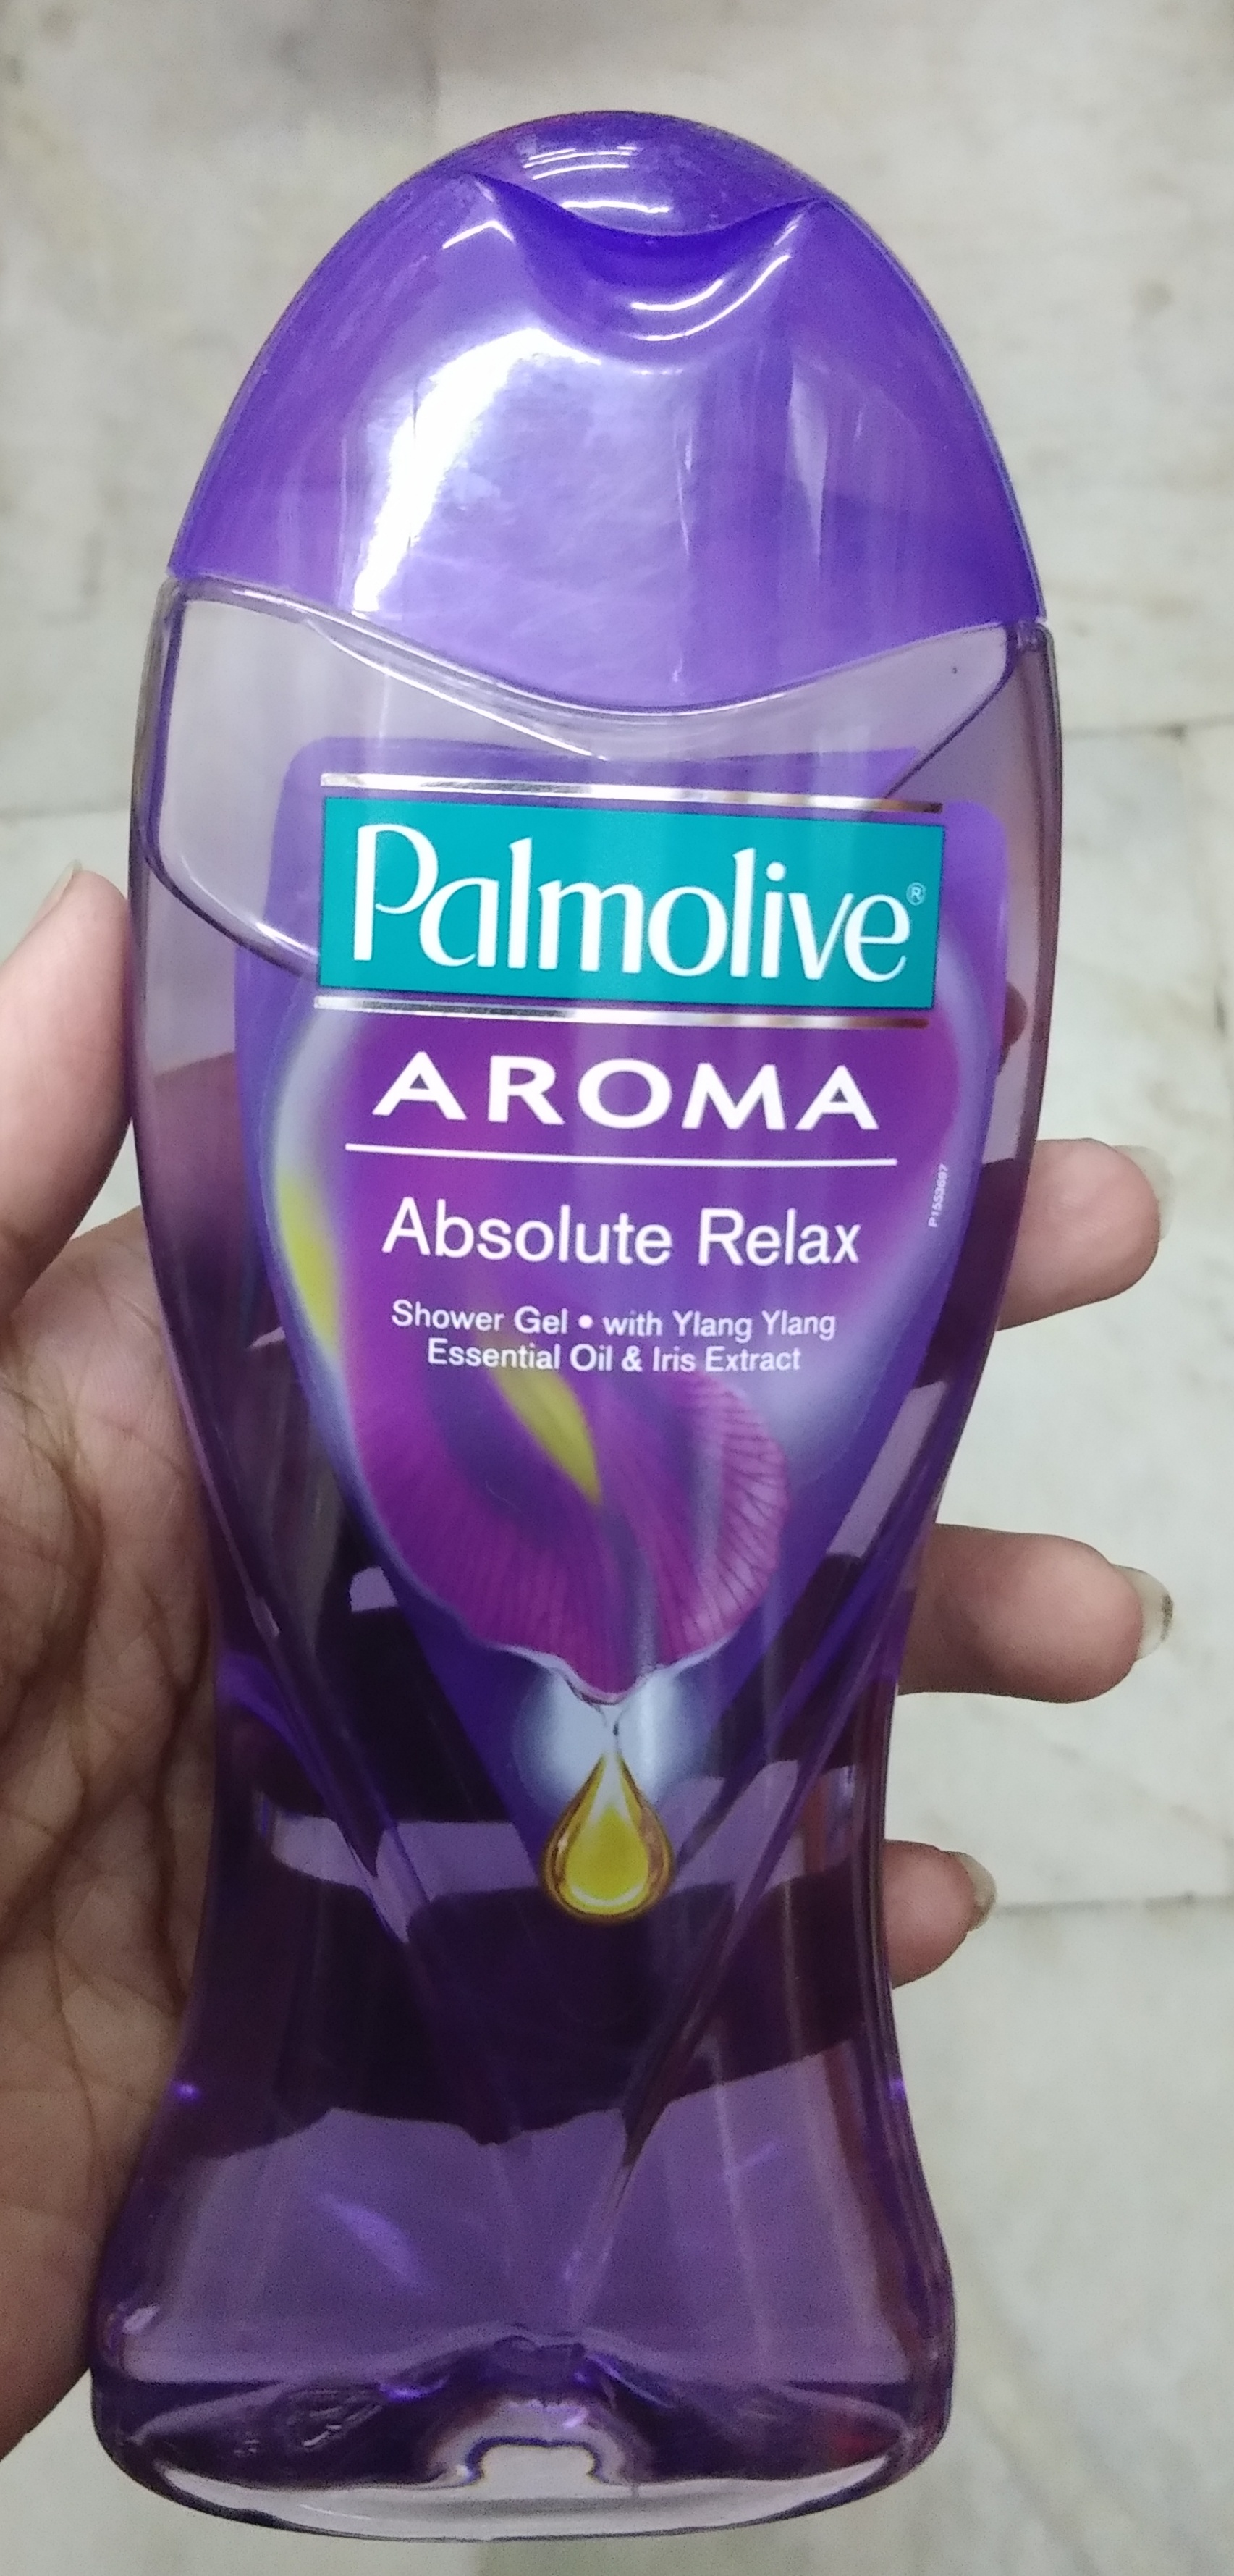 Palmolive Aroma Therapy Absolute Relax Shower Gel-Satisfied-By Nasreen-1